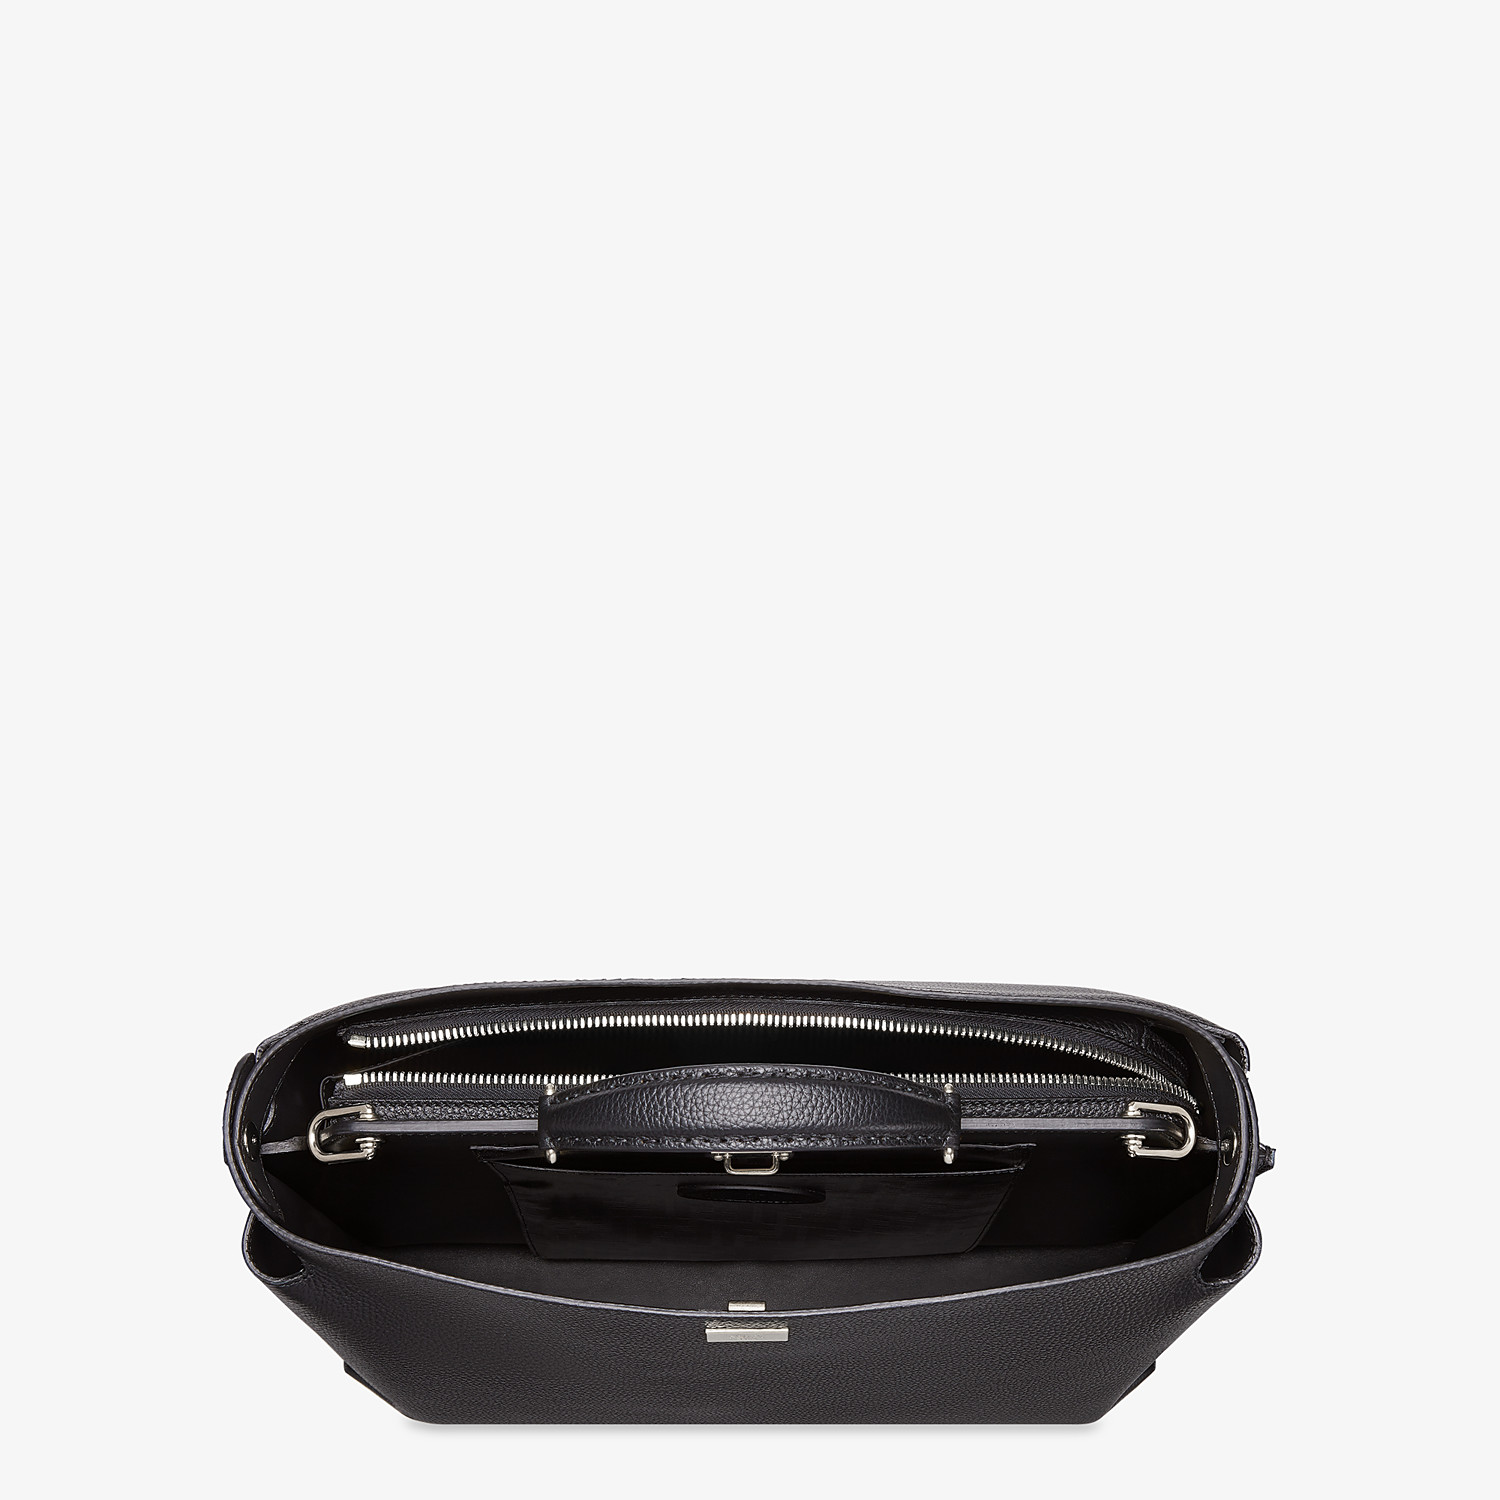 FENDI PEEKABOO ICONIC ESSENTIAL - Black leather bag - view 4 detail